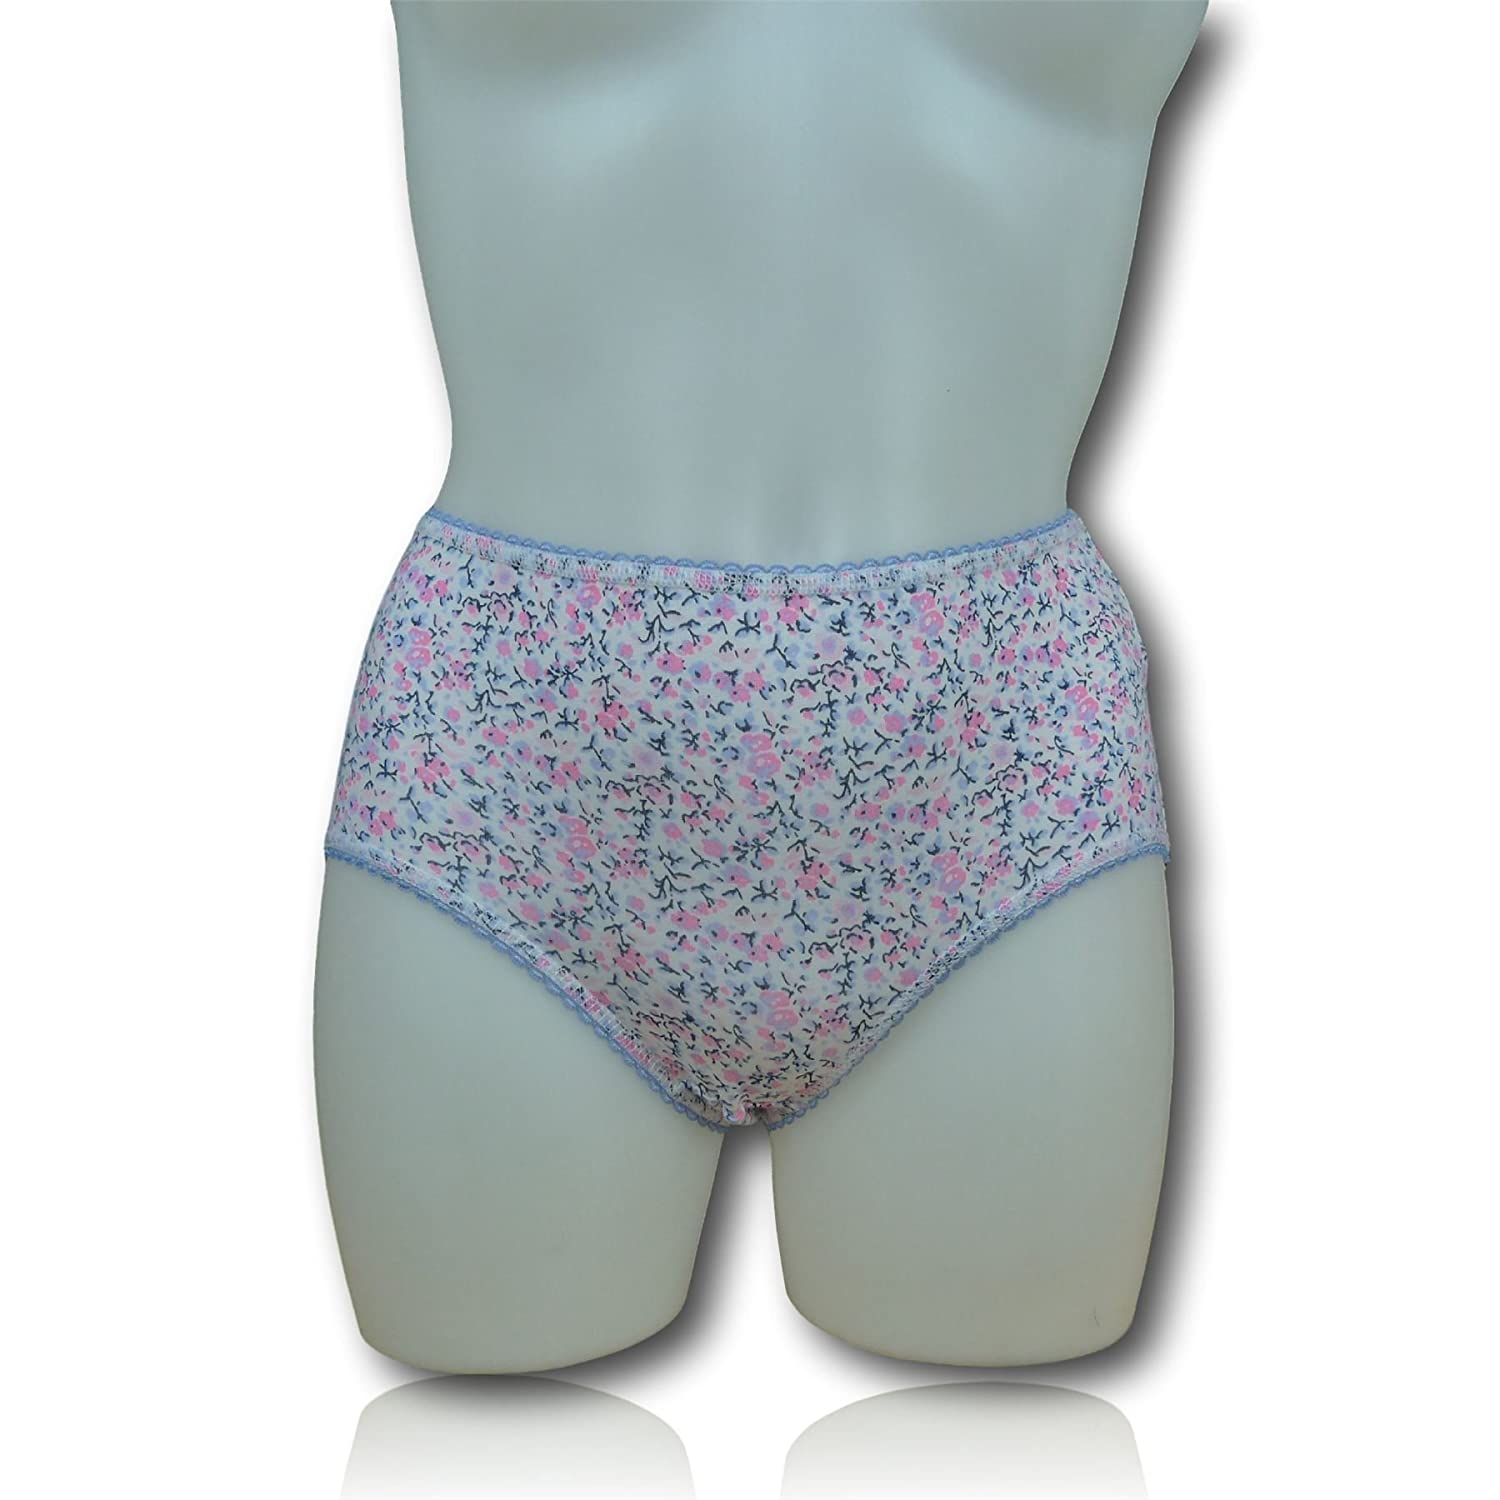 Fa M OUS Store Ladies/Womens 3 Pack Midi Briefs/Knickers (5 Colour Choices) Fa M Ou S Store